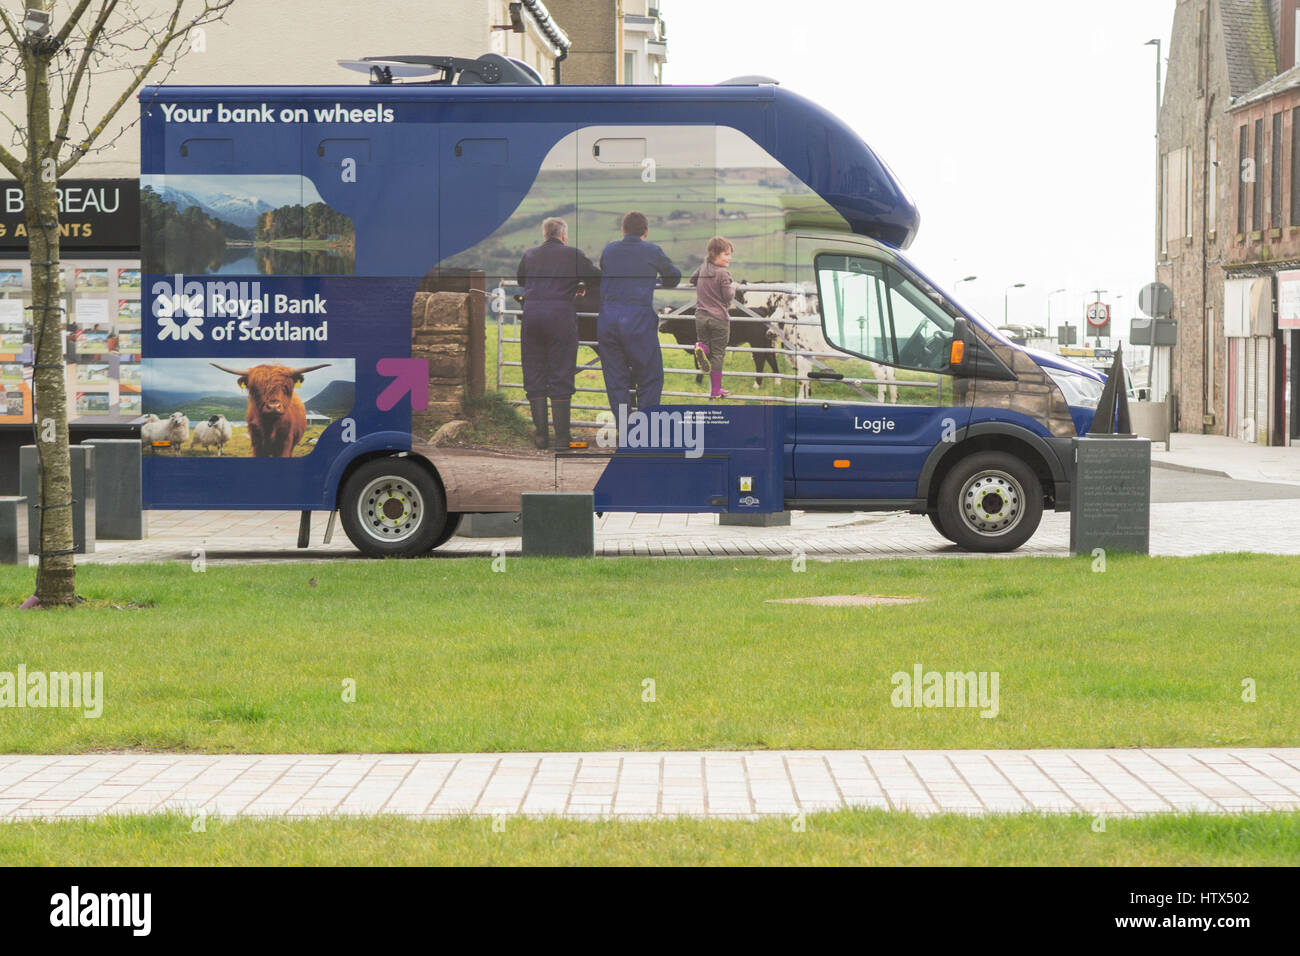 RBS Royal Bank of Scotland mobile van - Stock Image